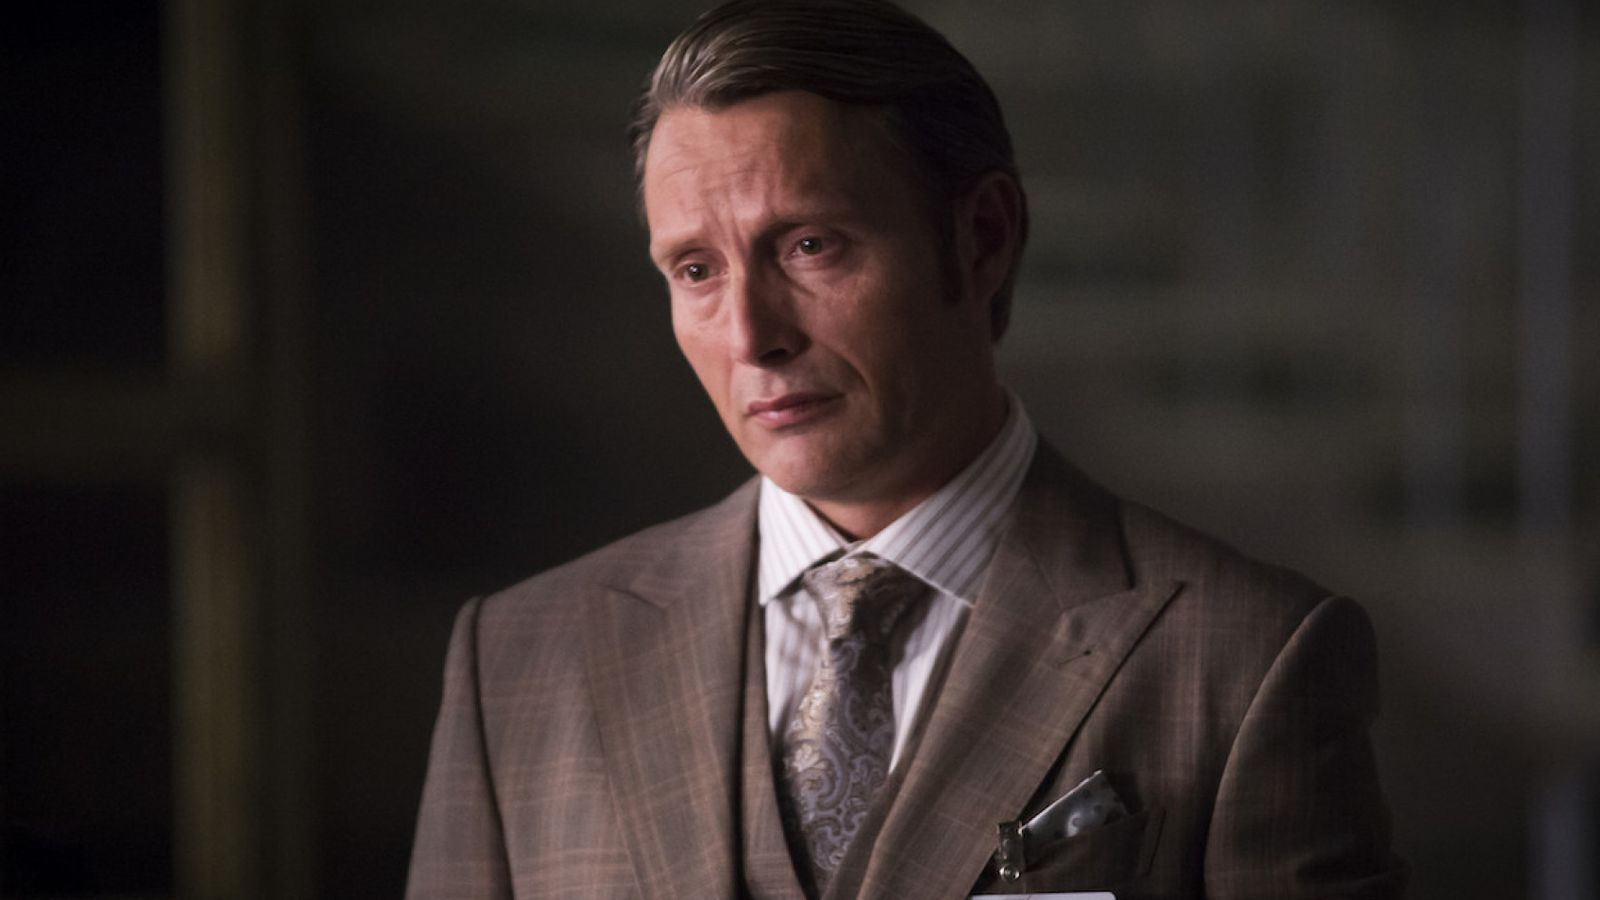 Rogue One Star Mads Mikkelsen Reveals His Star Wars Role